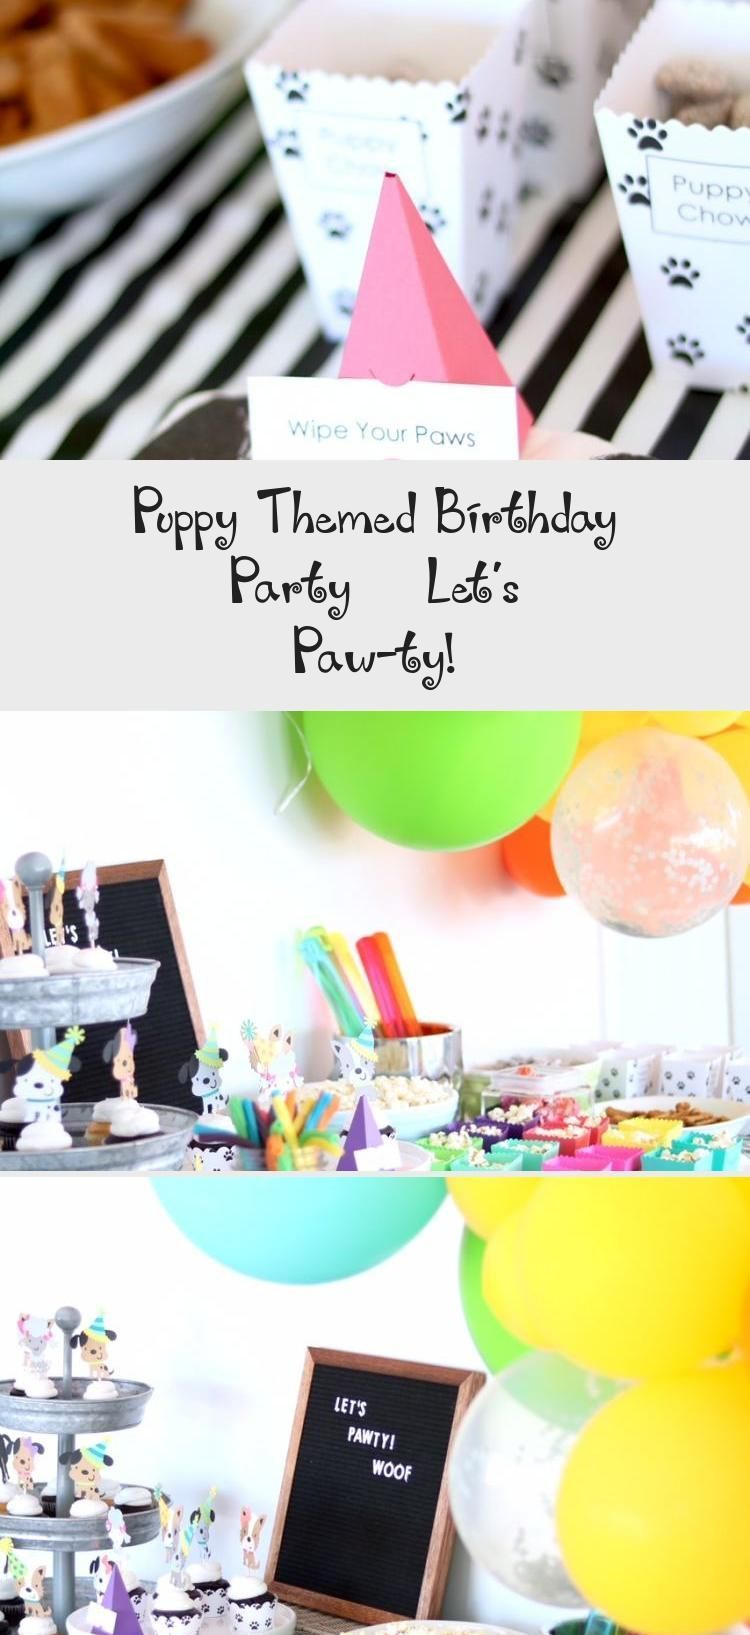 Lets Pawty Puppy Themed Birthday Party Inspiration  Dog Party  Kids Birthda Lets Pawty Puppy Themed Birthday Party Inspiration  Dog Party  Kids Birthday Party Ideas  Birt...